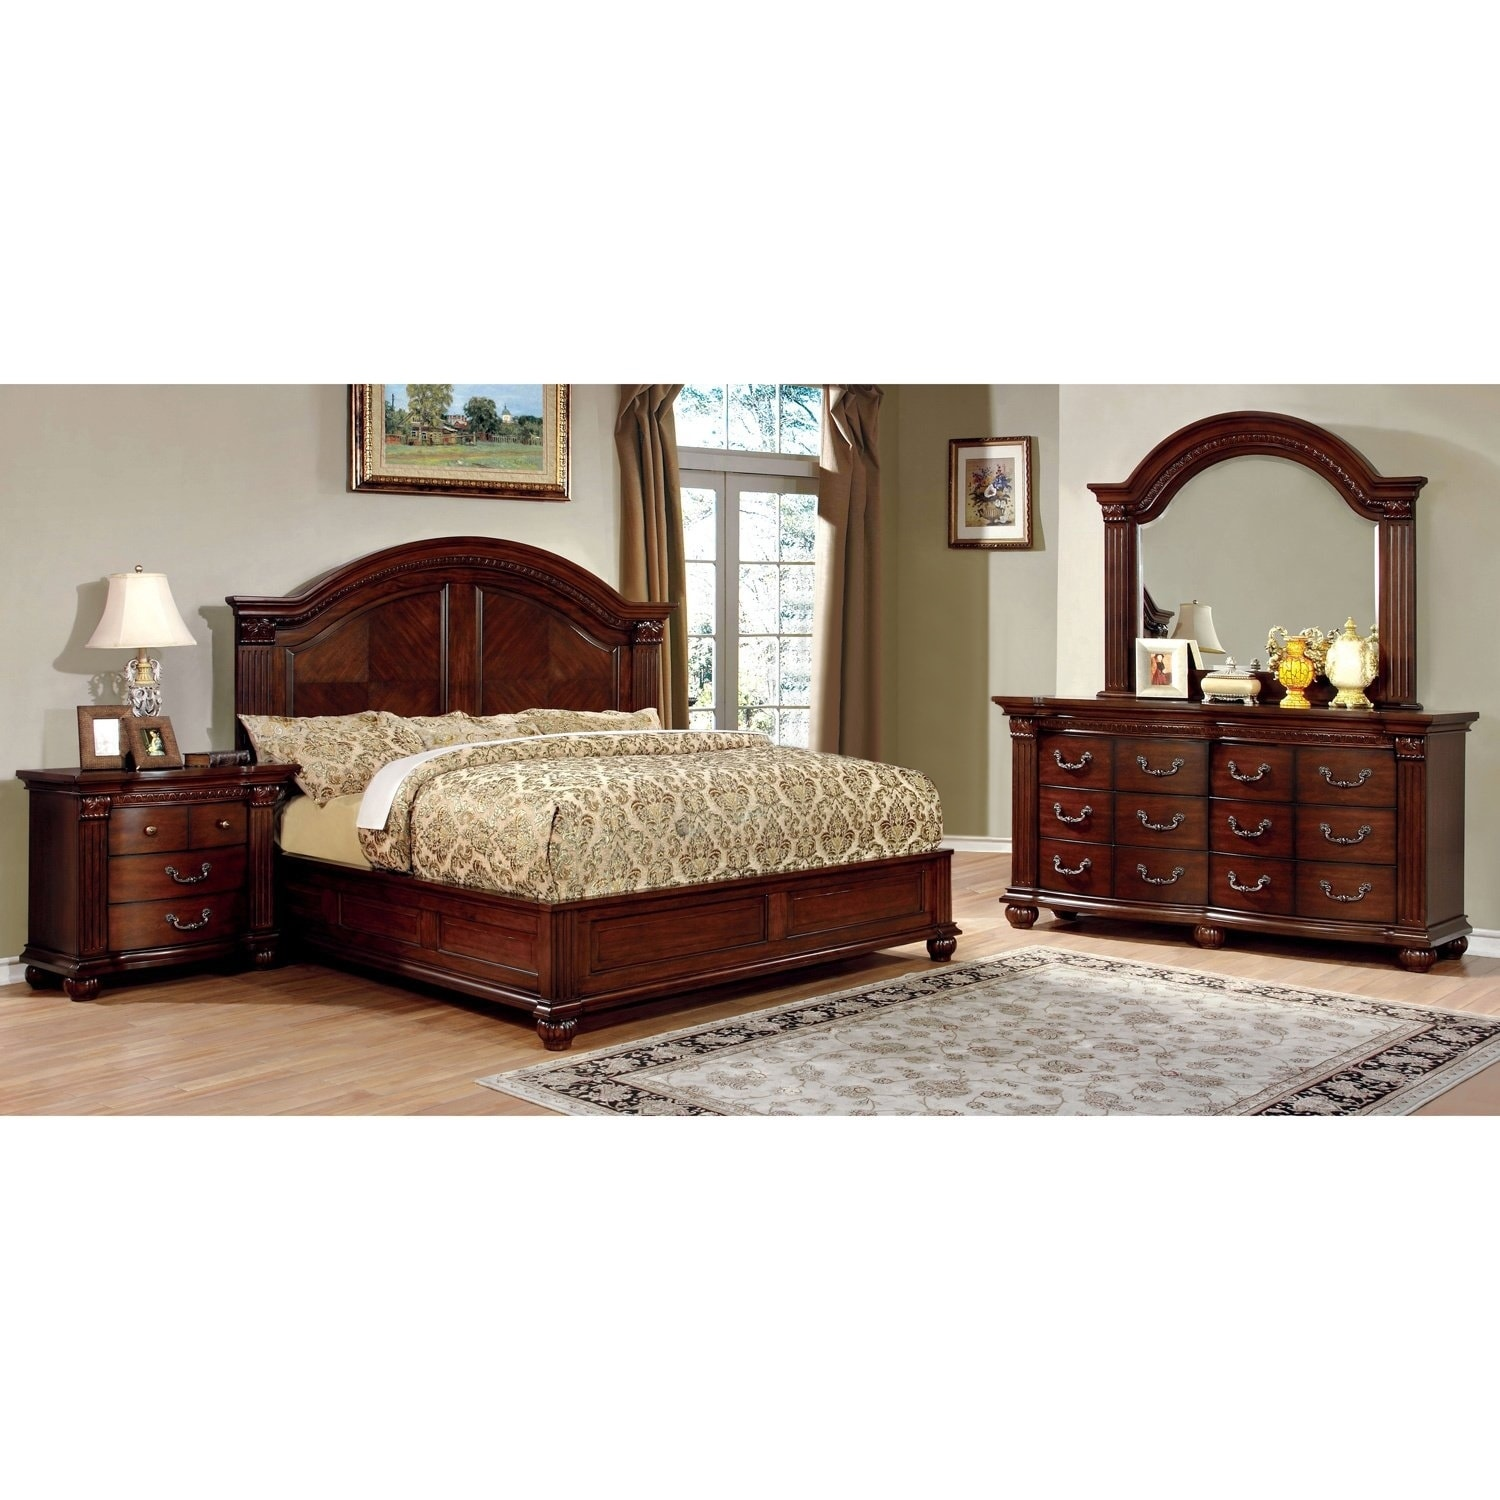 Description Traditional Bedroom Furniture Design Meet Relaxed Modern Urban In Our Proximity Cherry Wood King Size Sleigh Bed Crafted Of Solid